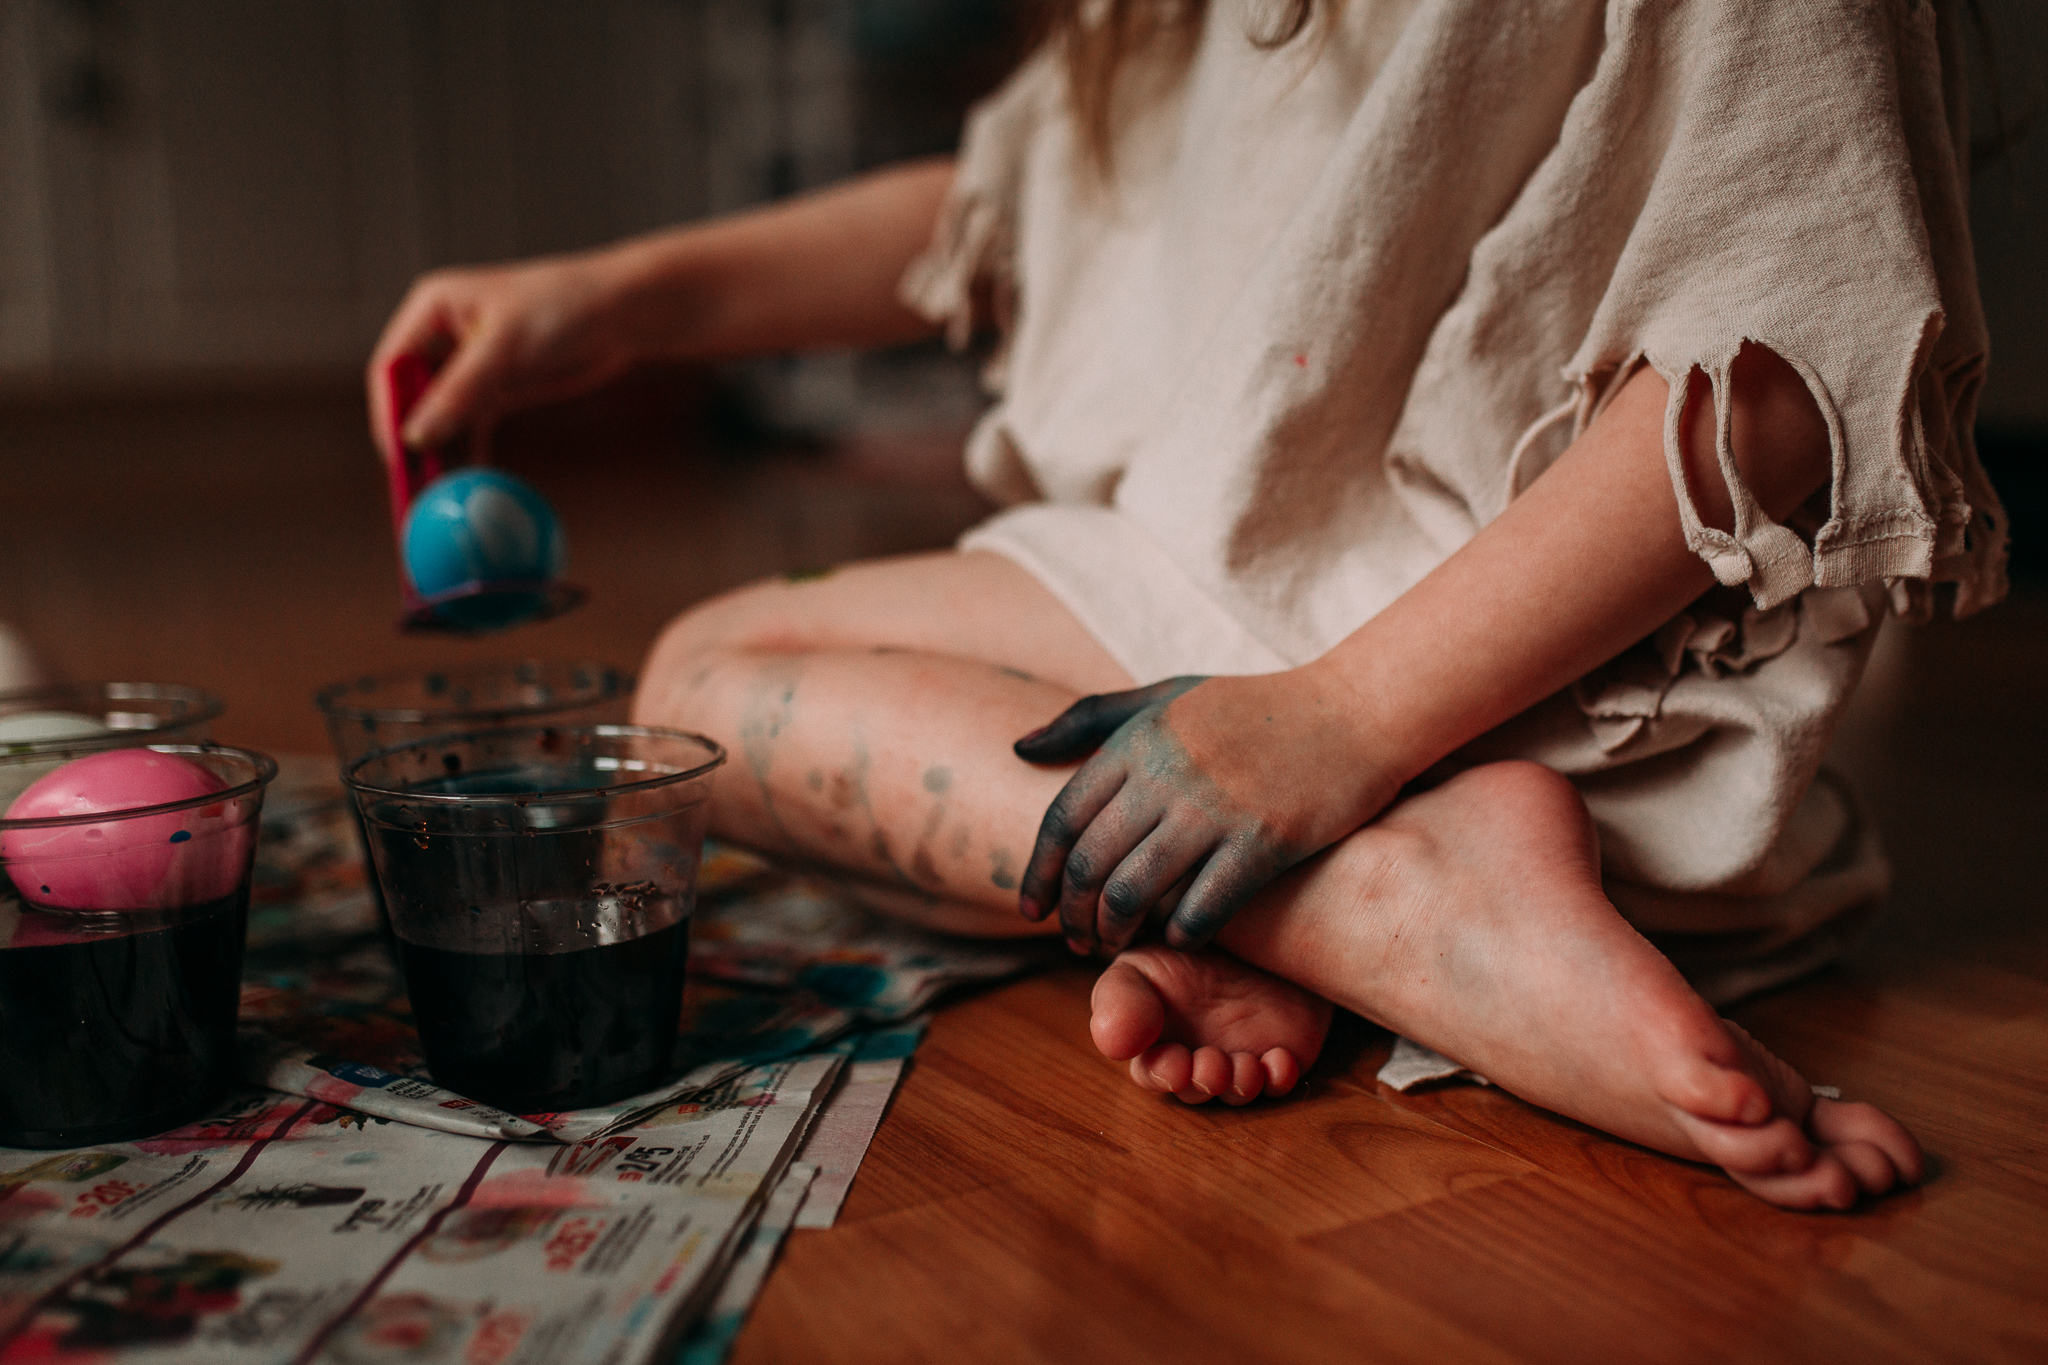 girl dyes Easter eggs details hands feet lifestyle documentary family childhood Ashburn Loudoun Northern Virginia Marti Austin Photography